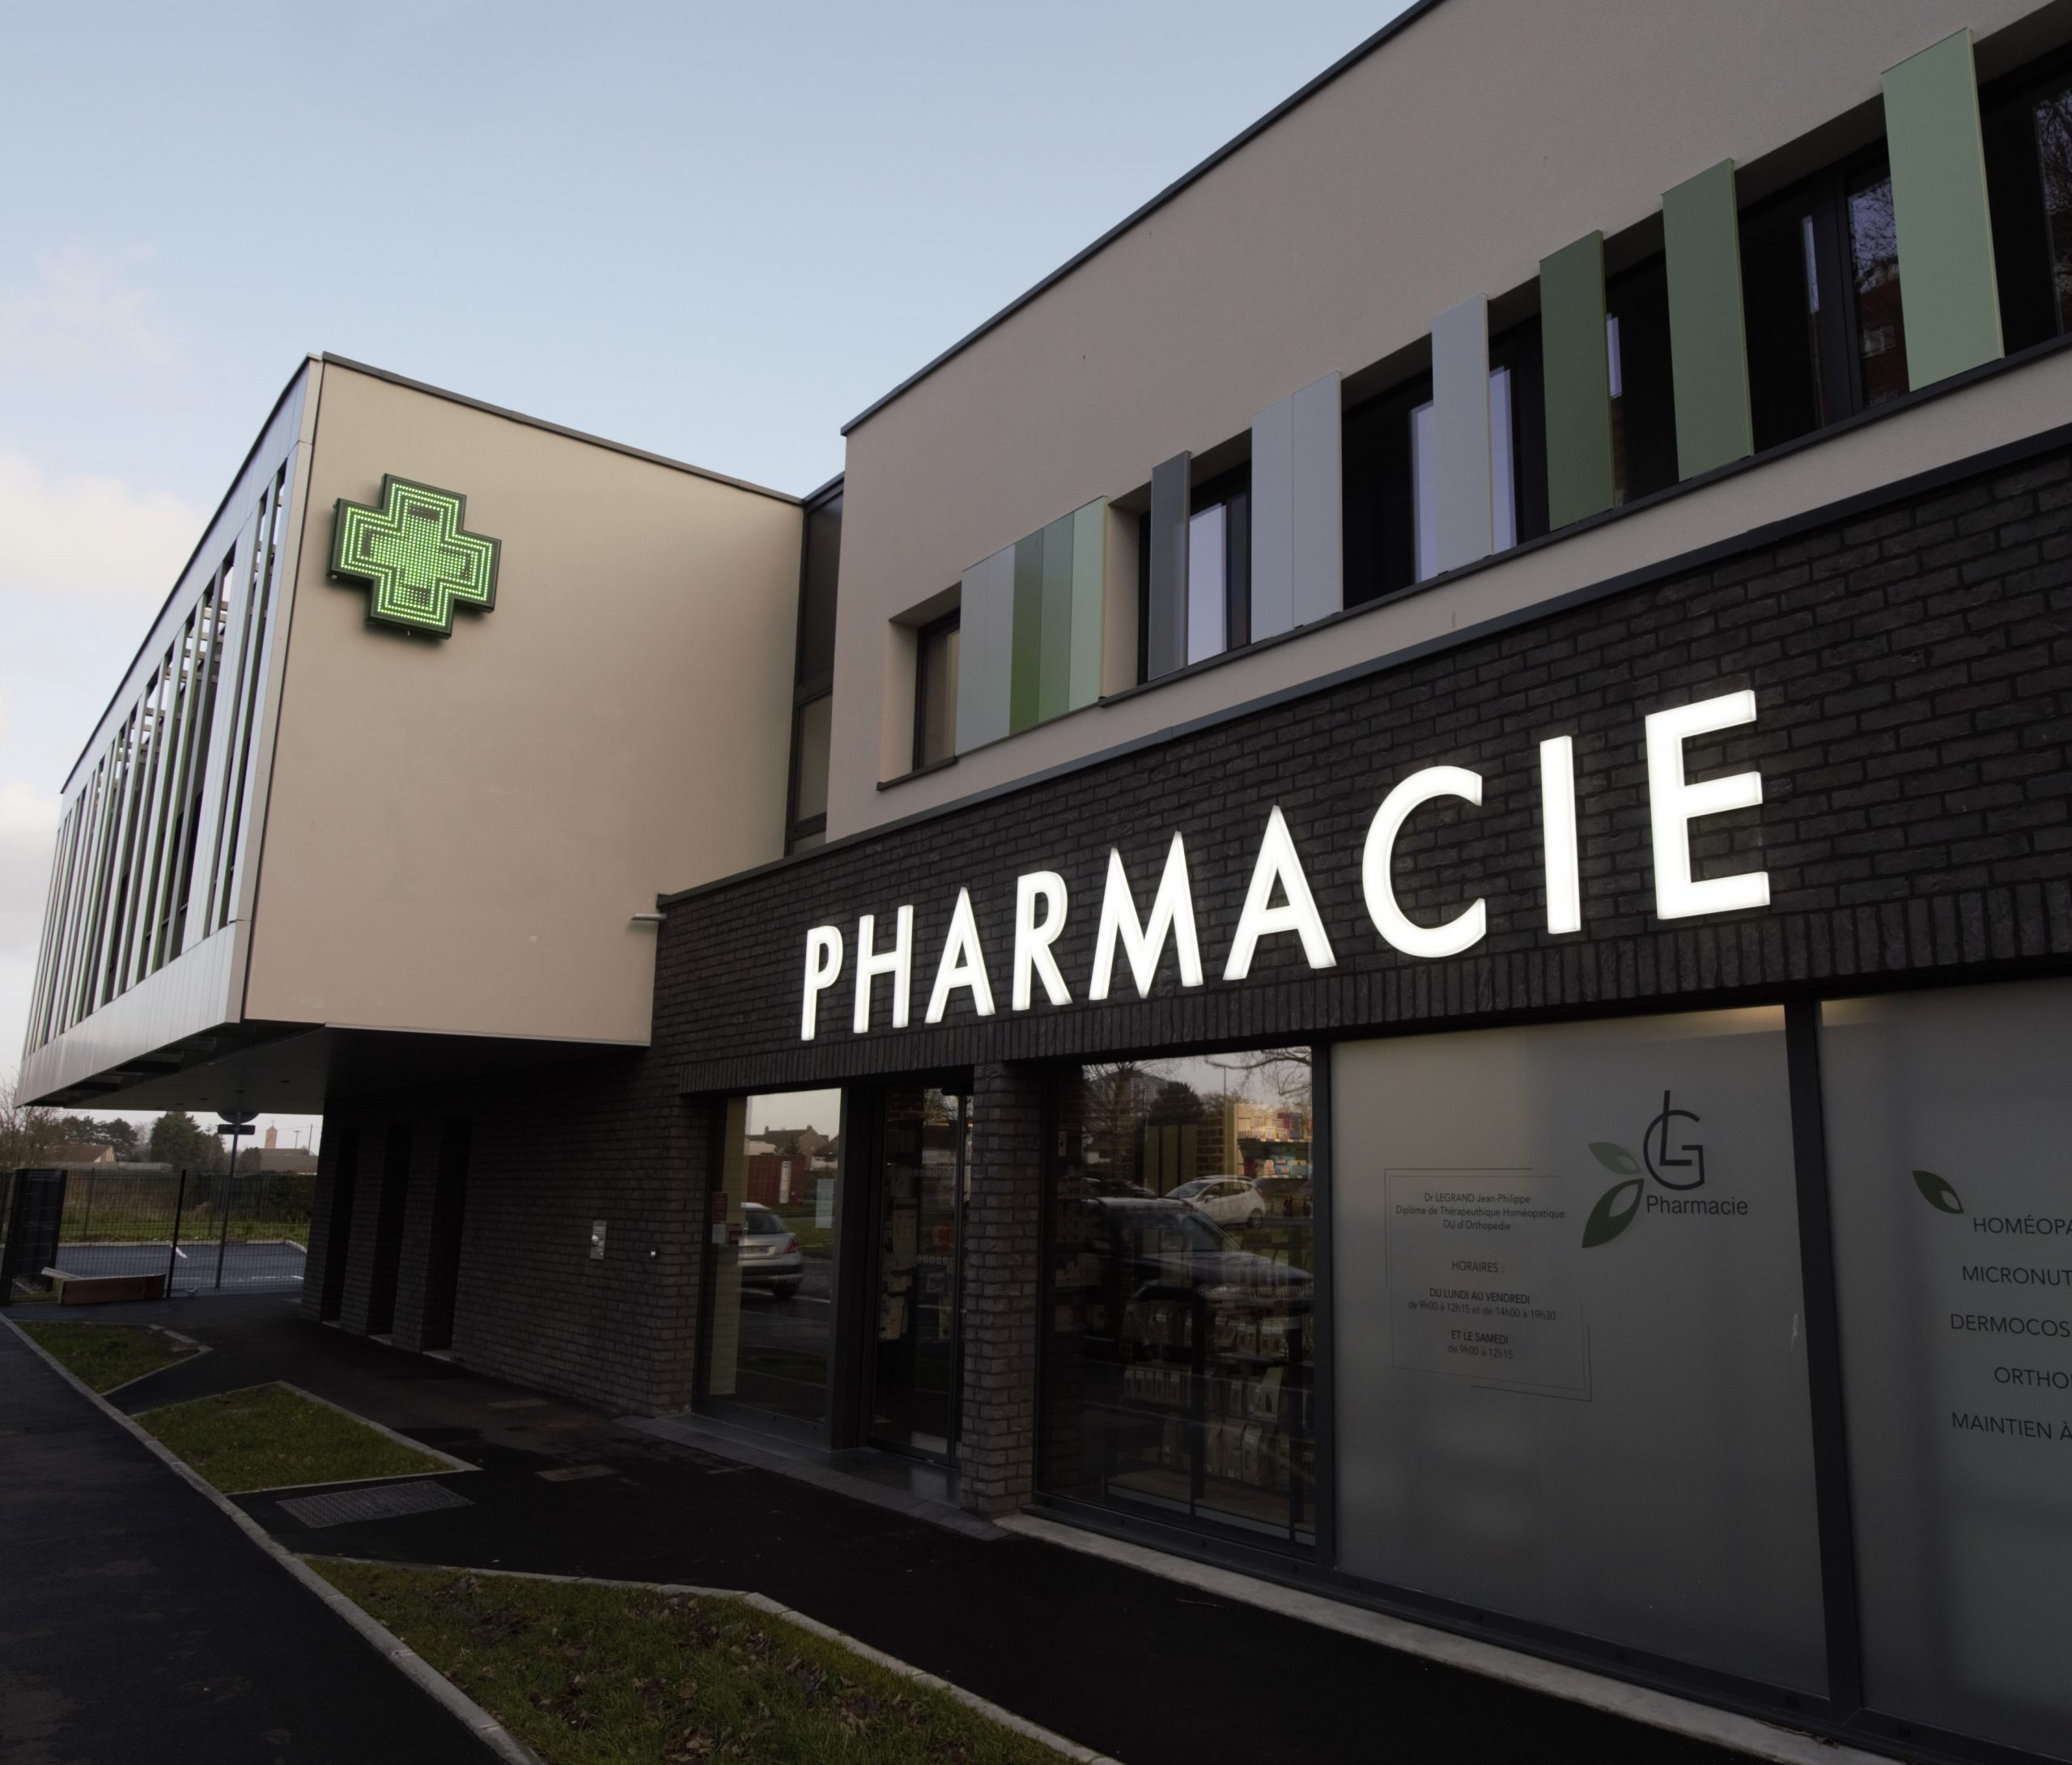 Agencement de pharmacie